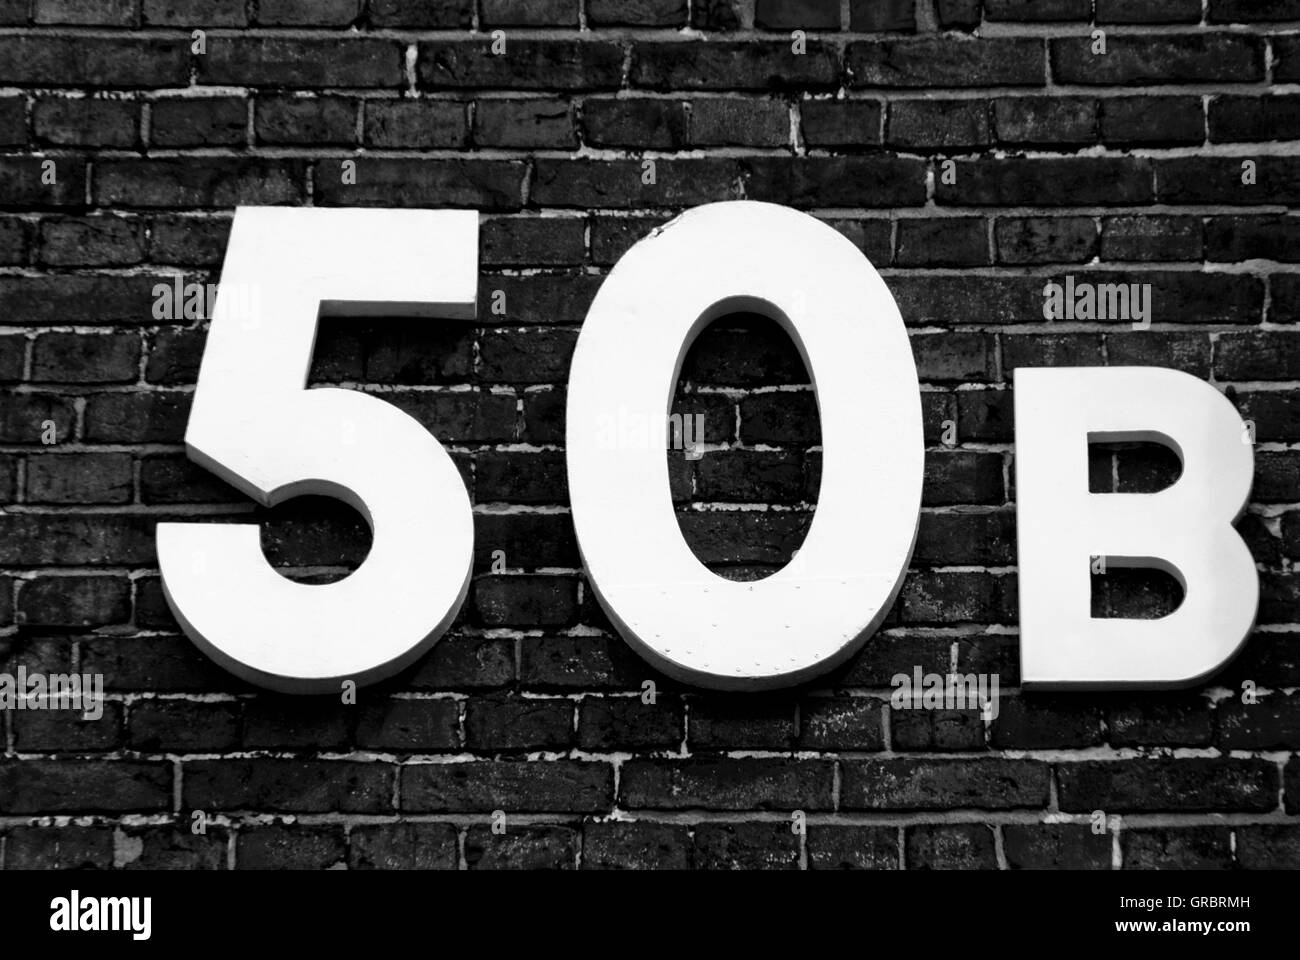 50B, Numeral, Numbers, - Stock Image